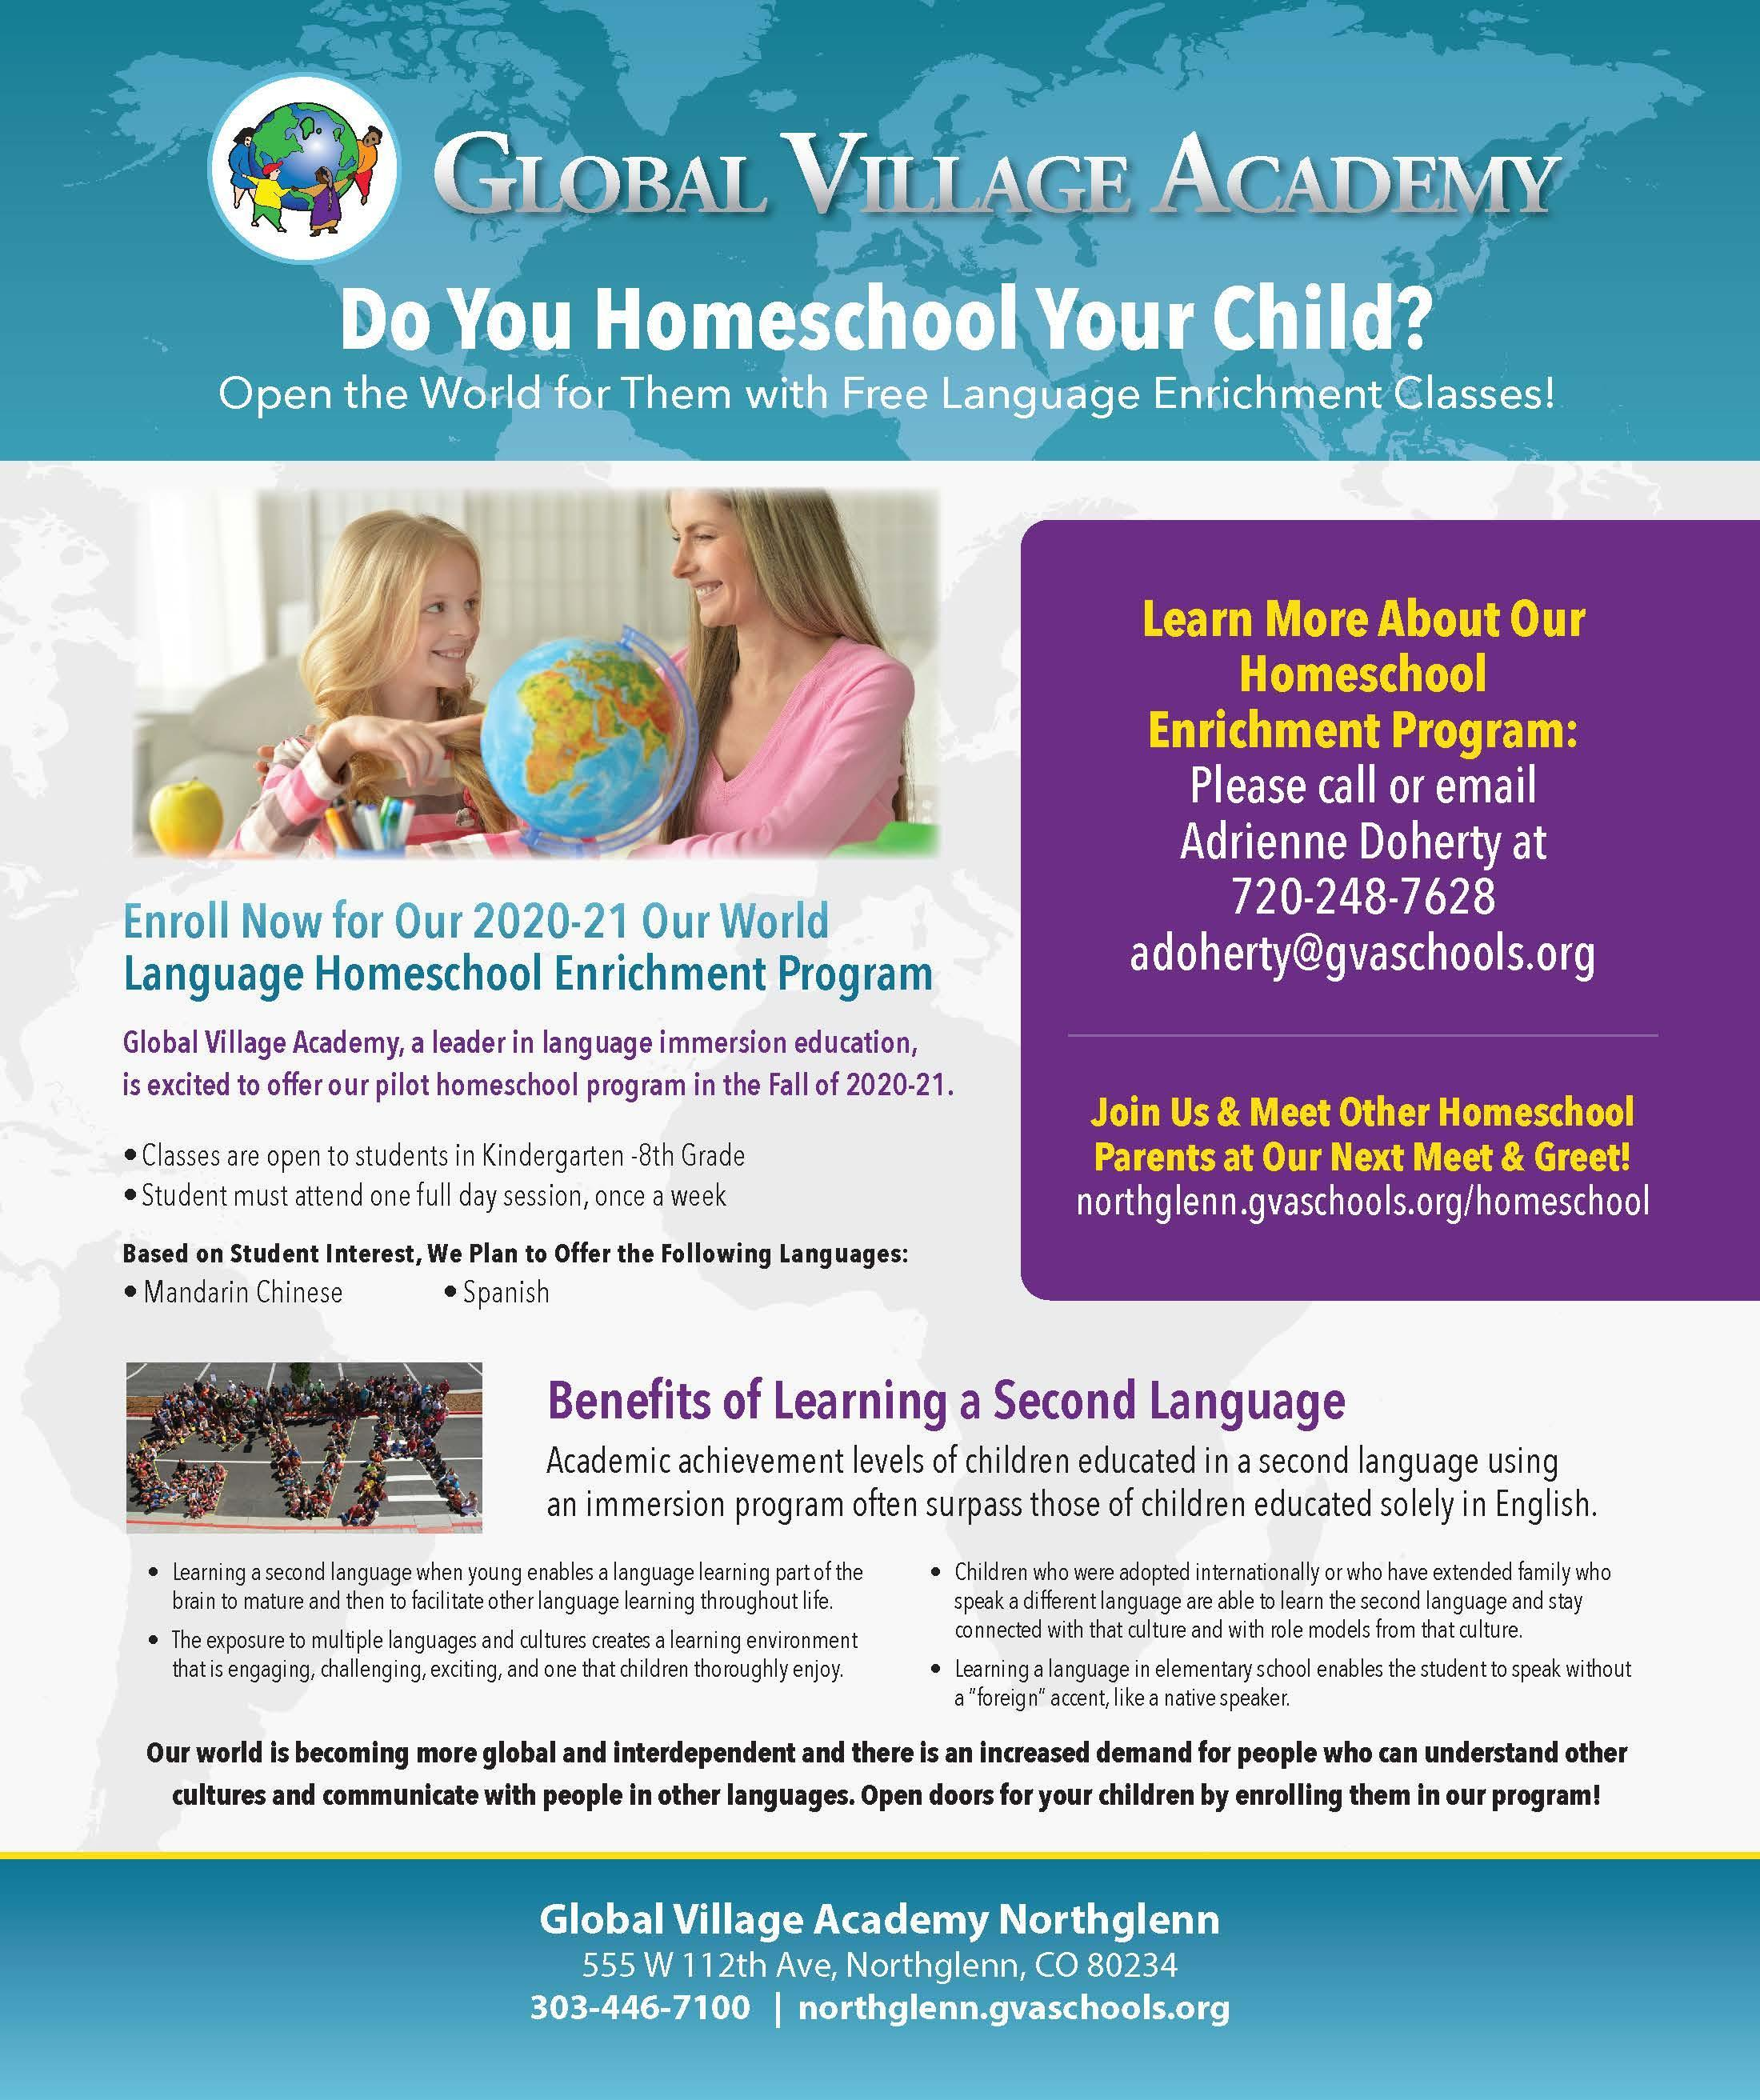 homeschool info -can be found on pdf